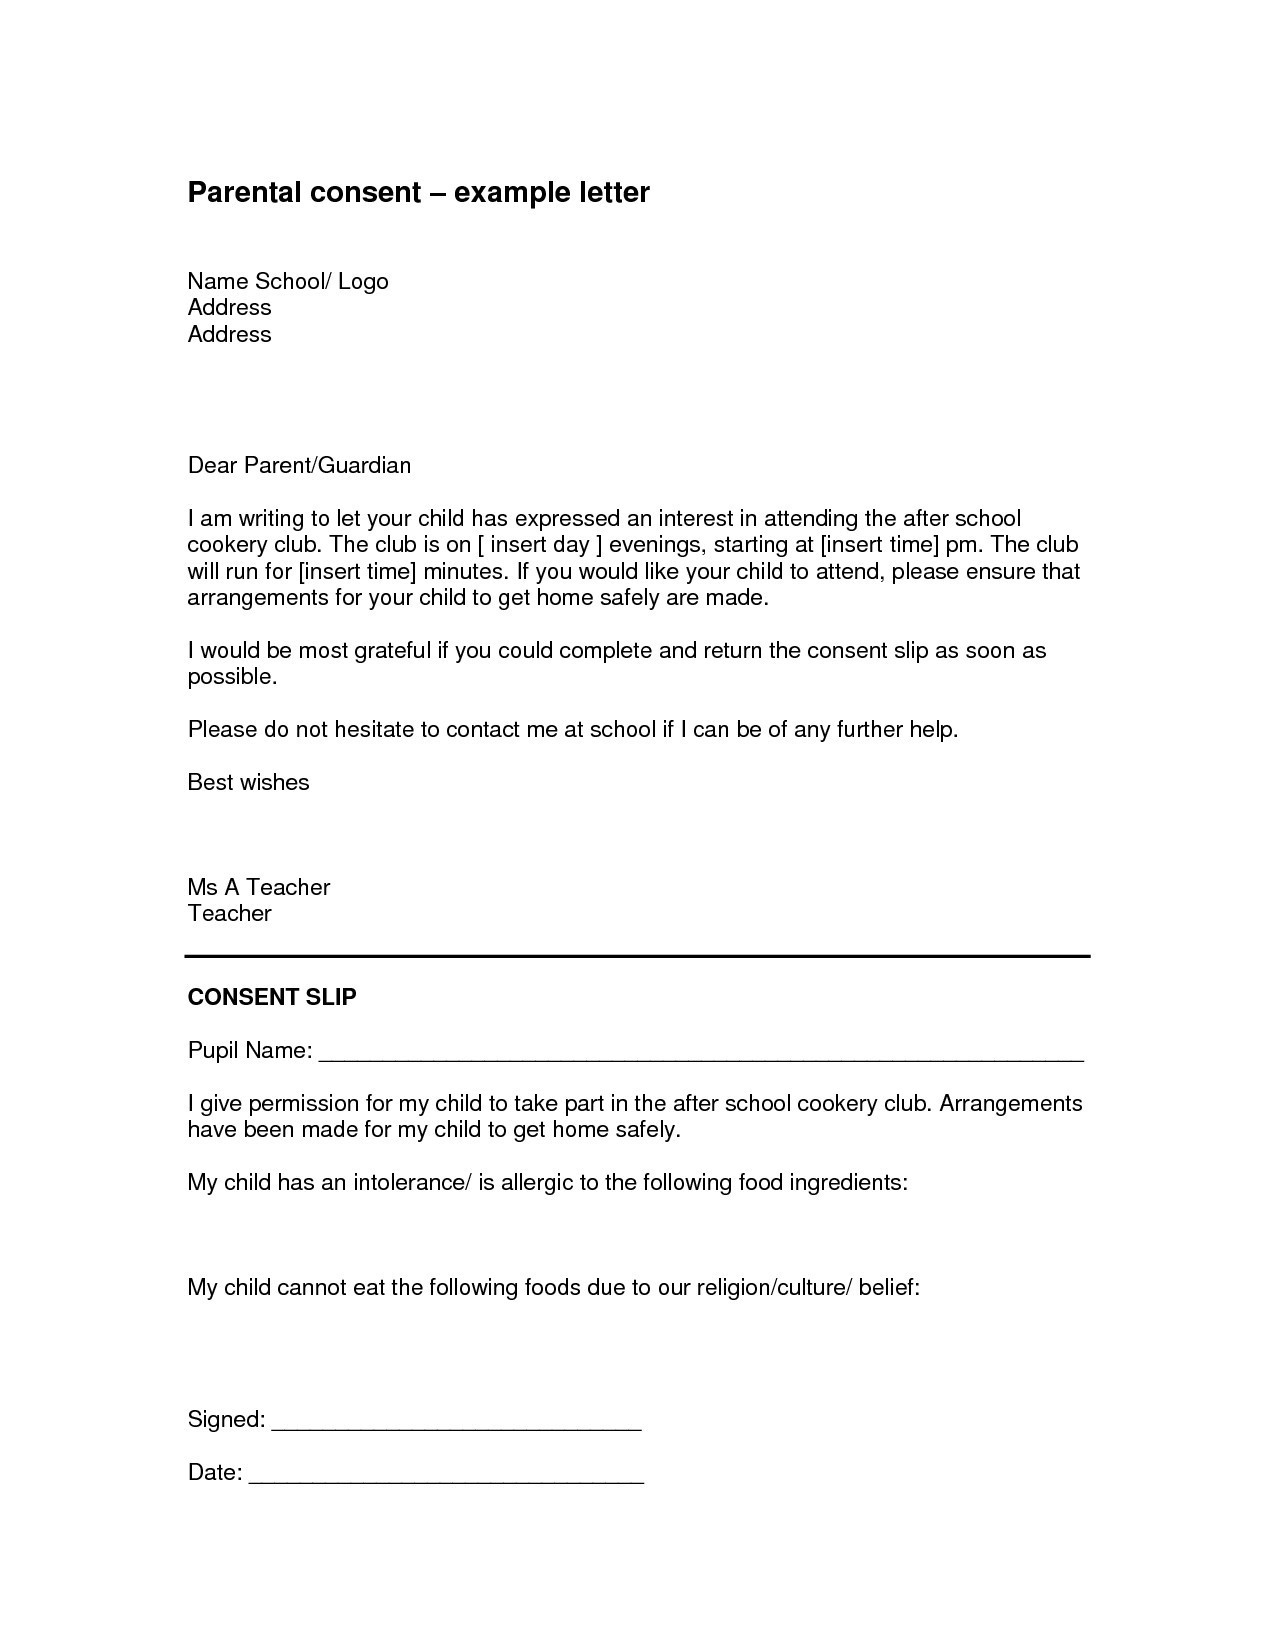 Travel Consent Letter Template - Permission Letter to Travel Save Sample Permission to Travel Letter